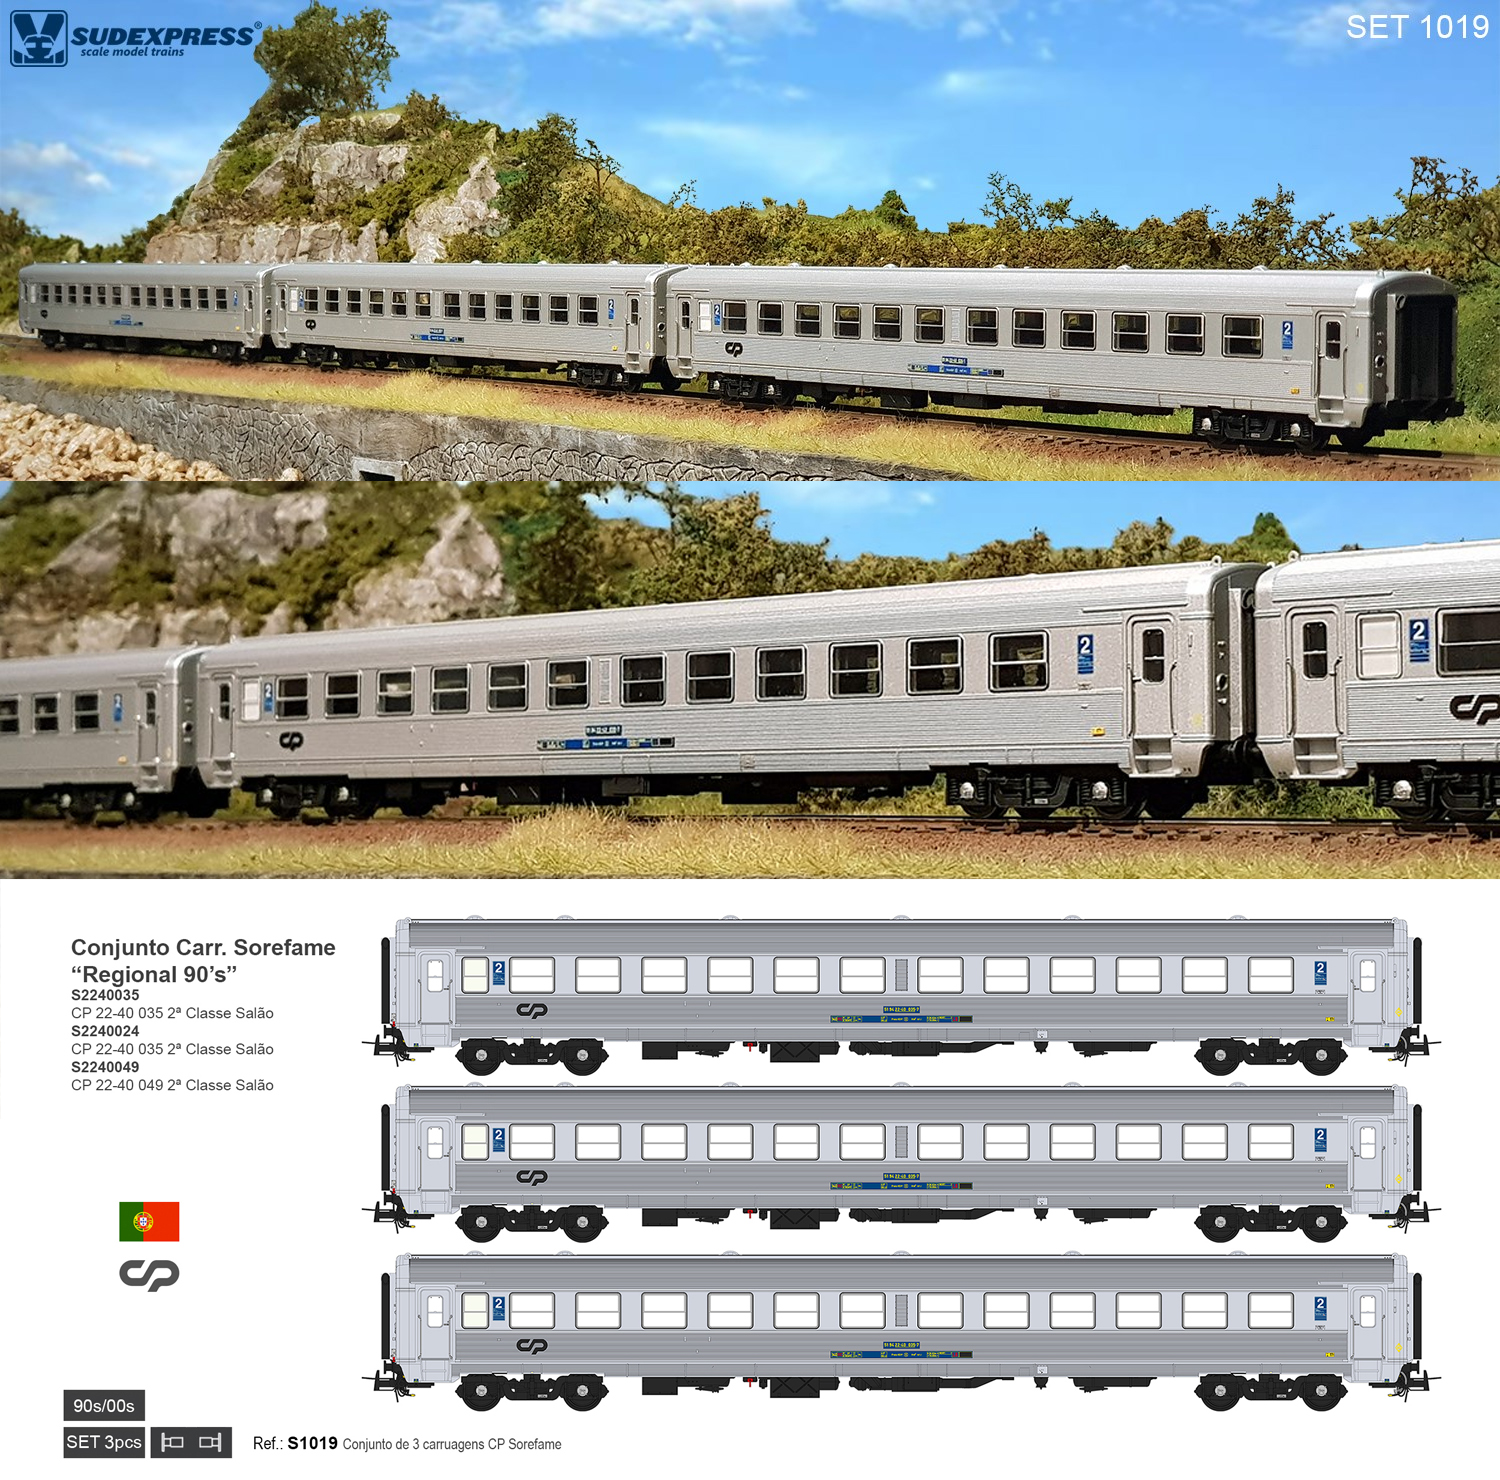 CP Sorefame Coaches: First delivery Set S1019